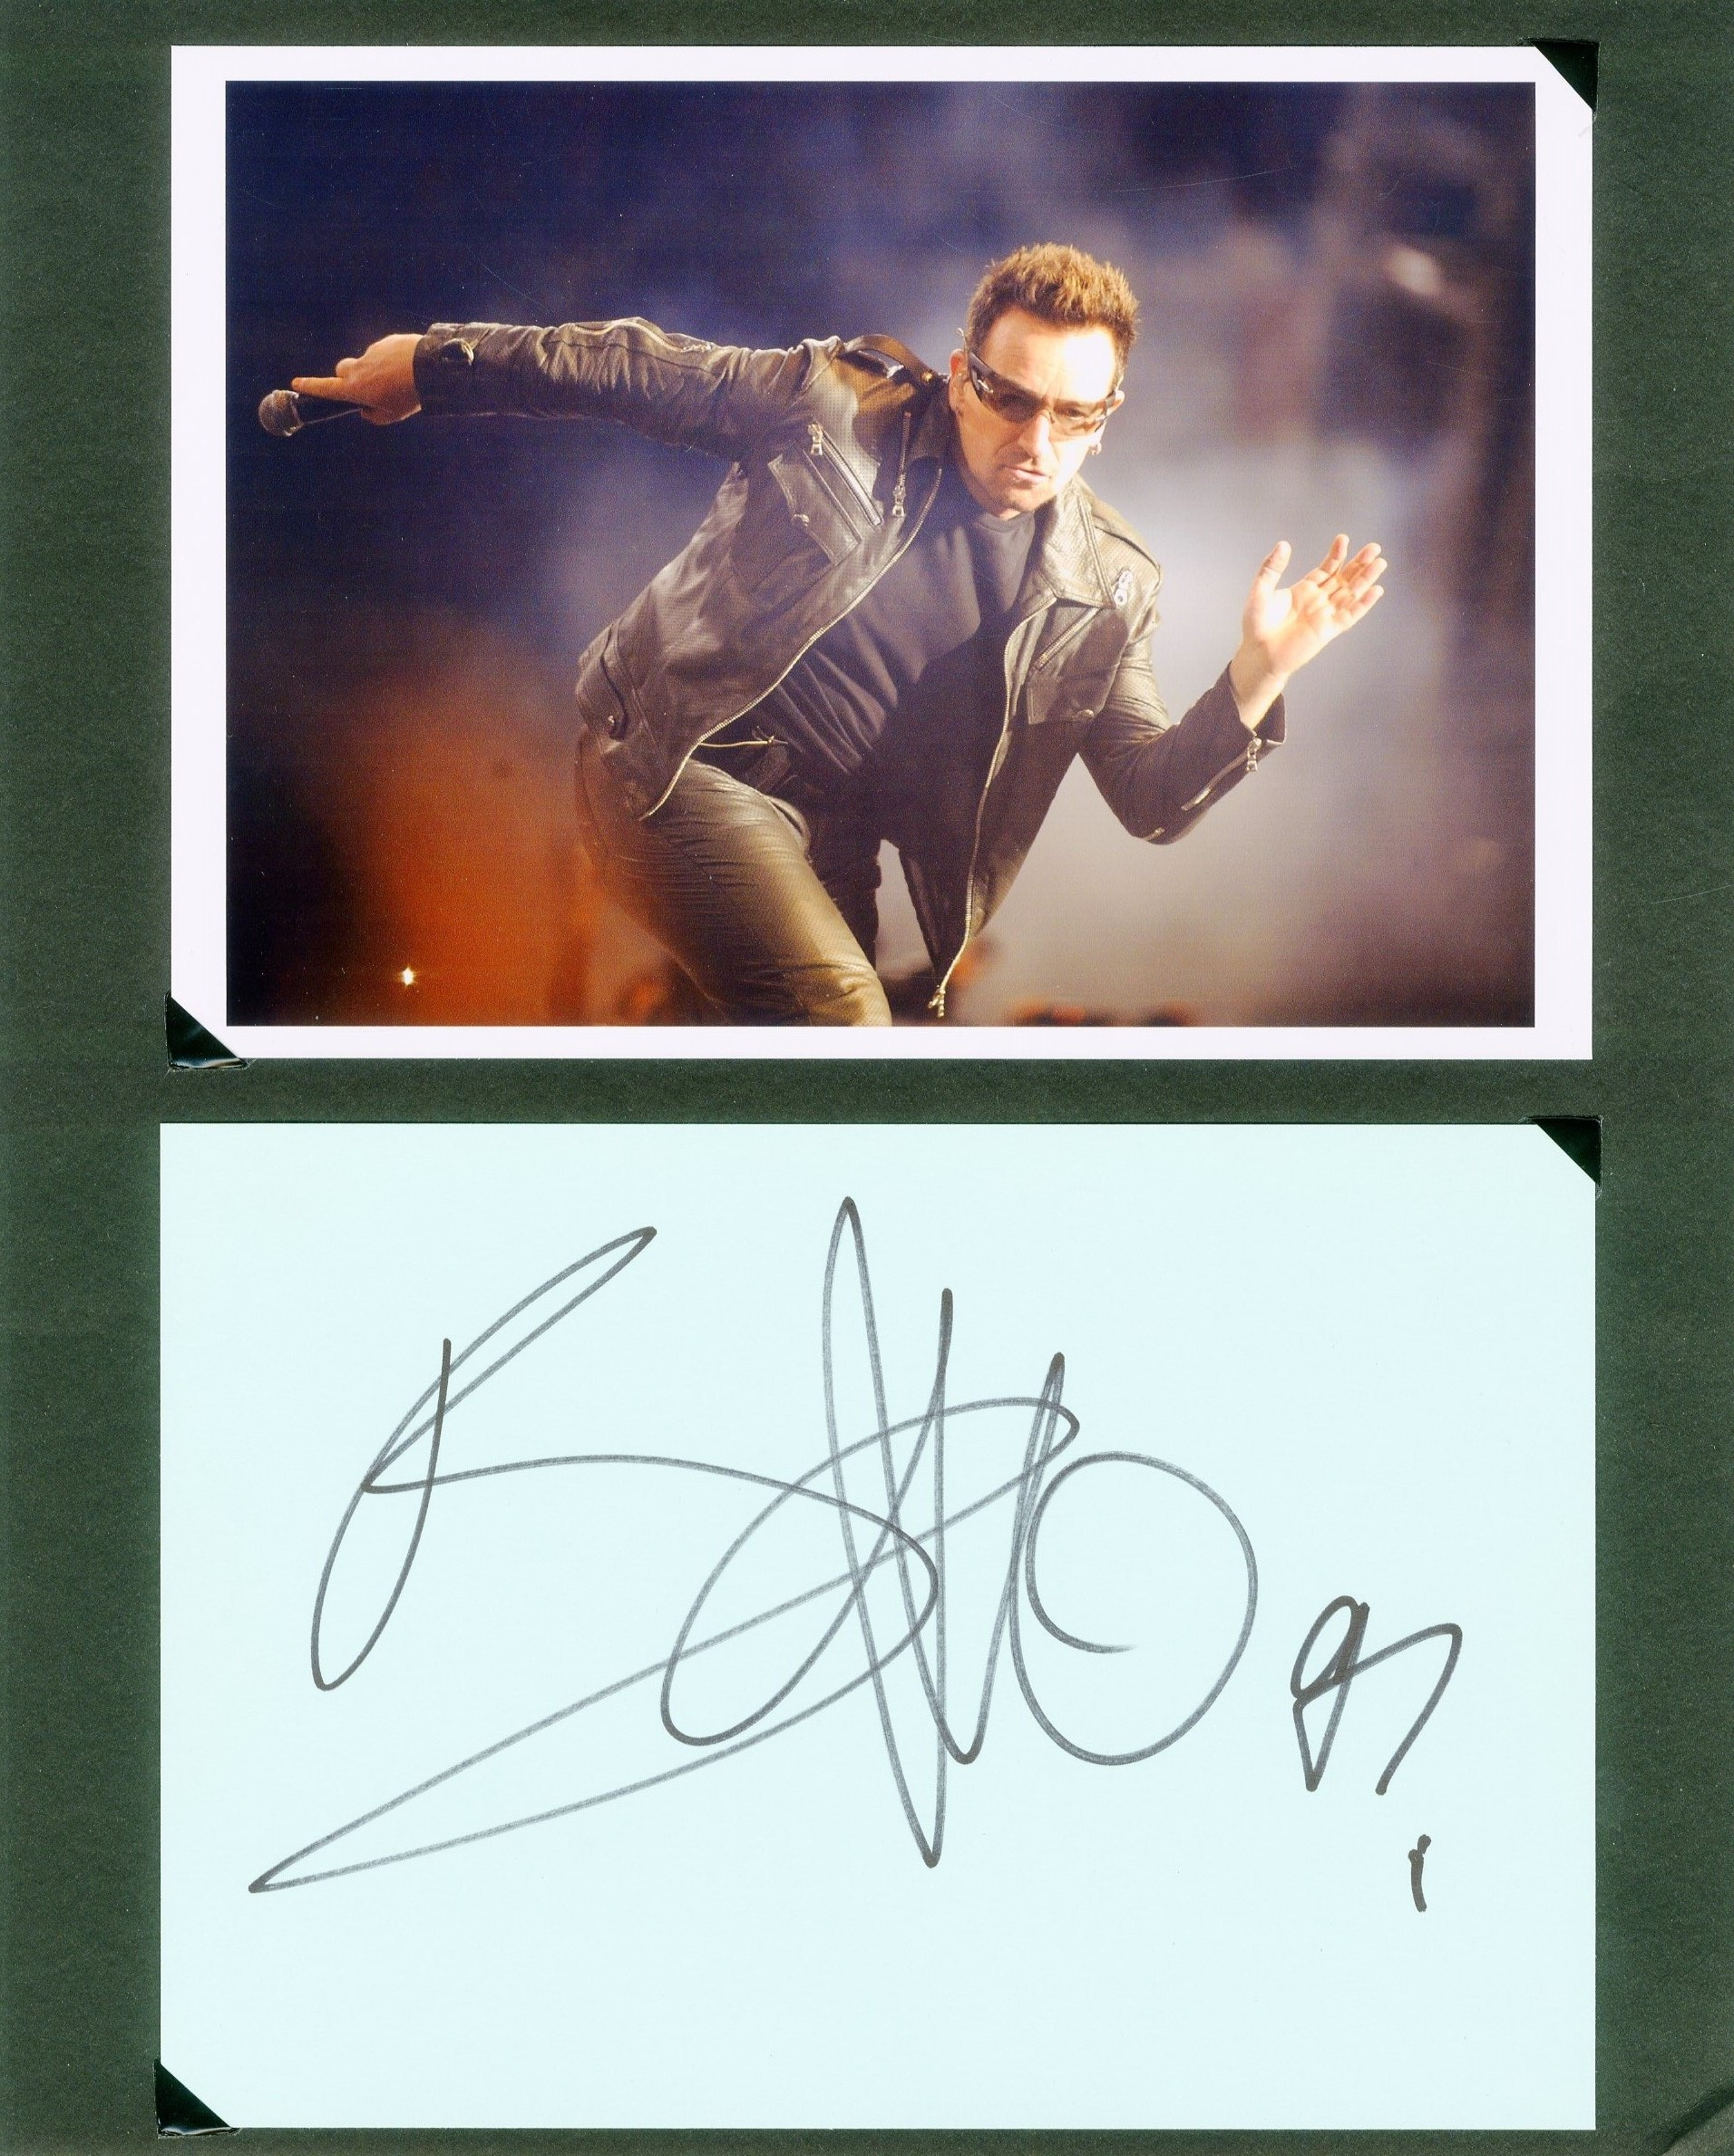 Lot 151 - BONO: (1960- ) Irish Singer and Songwrit